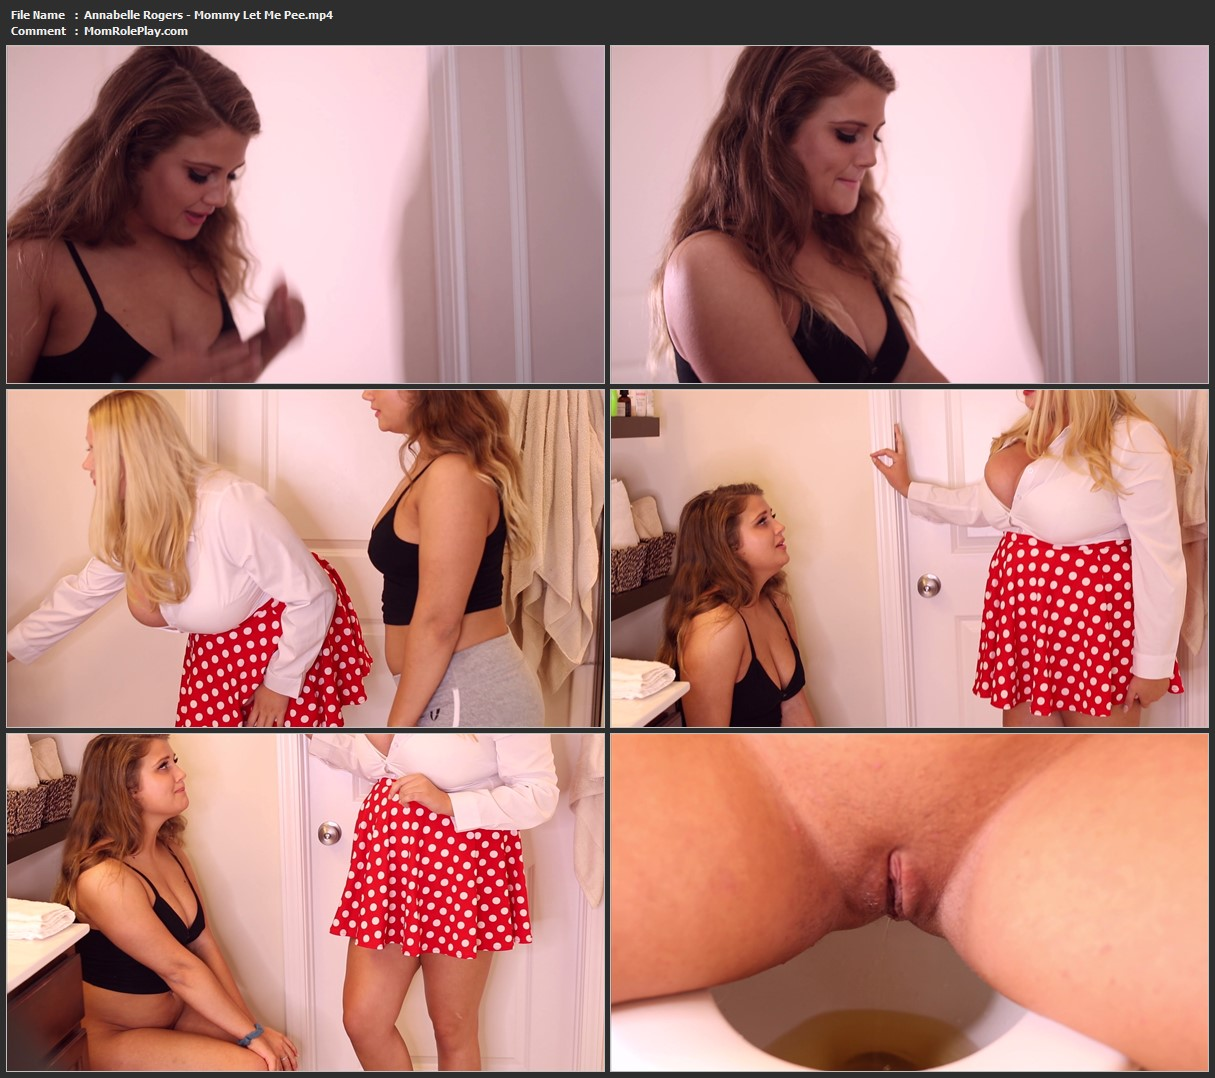 Annabelle Rogers - Mommy Let Me Pee